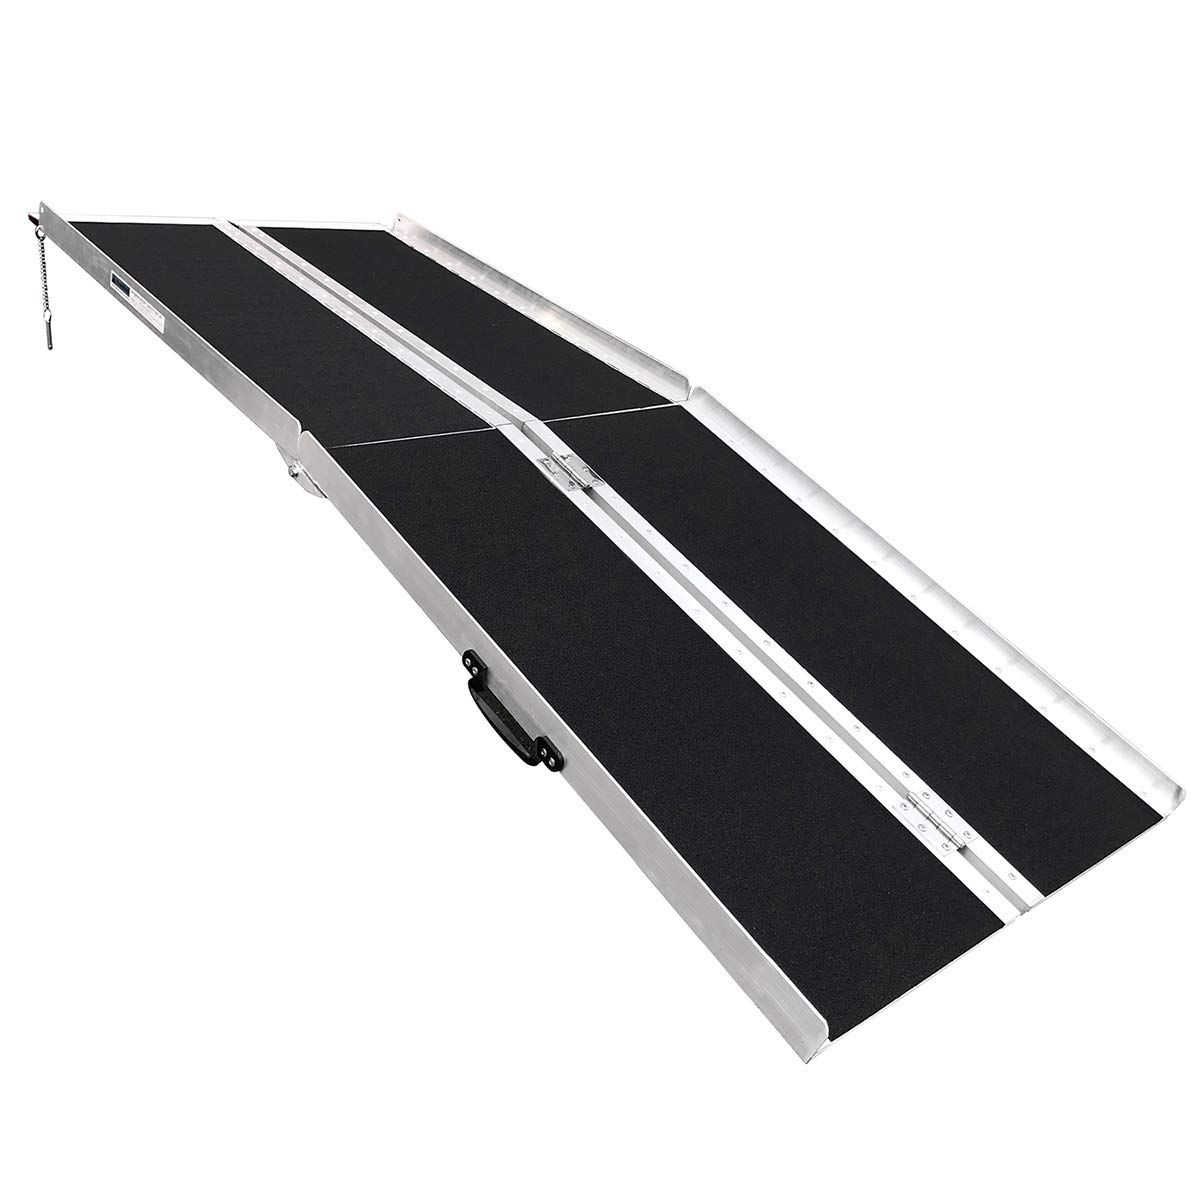 Clevr 6' (72'' X 31'') Non-Skid Aluminum Wheelchair Loading Traction Ramp, Lightweight Folding Portable, Single Fold Wheelchair Scooter Ramp, Extra Wide 31'', Holds up to 600 lbs